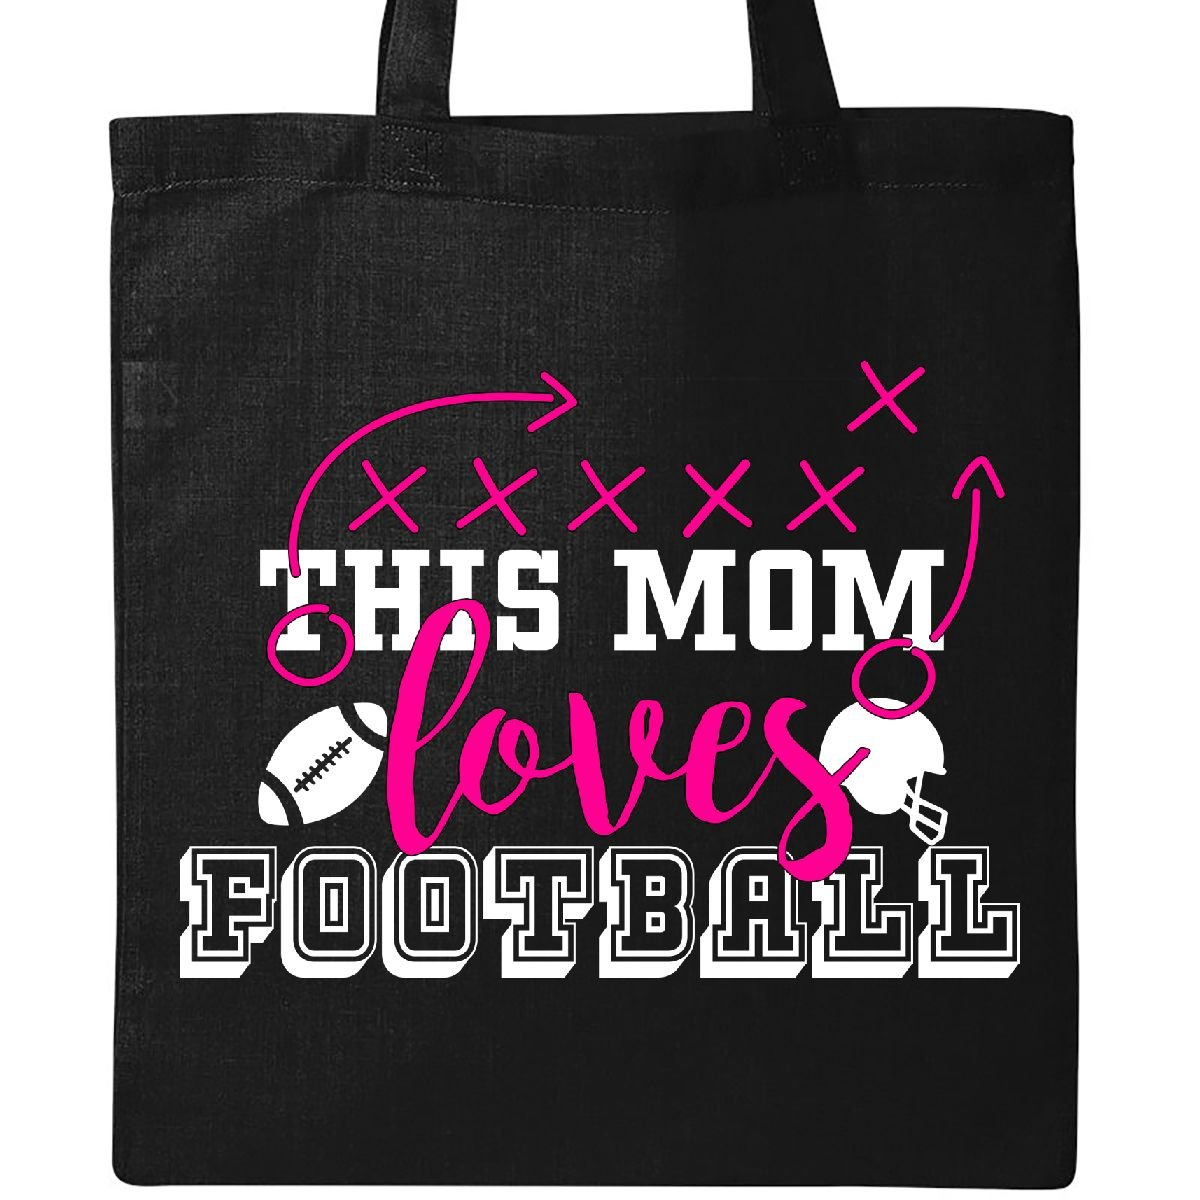 Inktastic - This Mom Loves Football Tote Bag Black